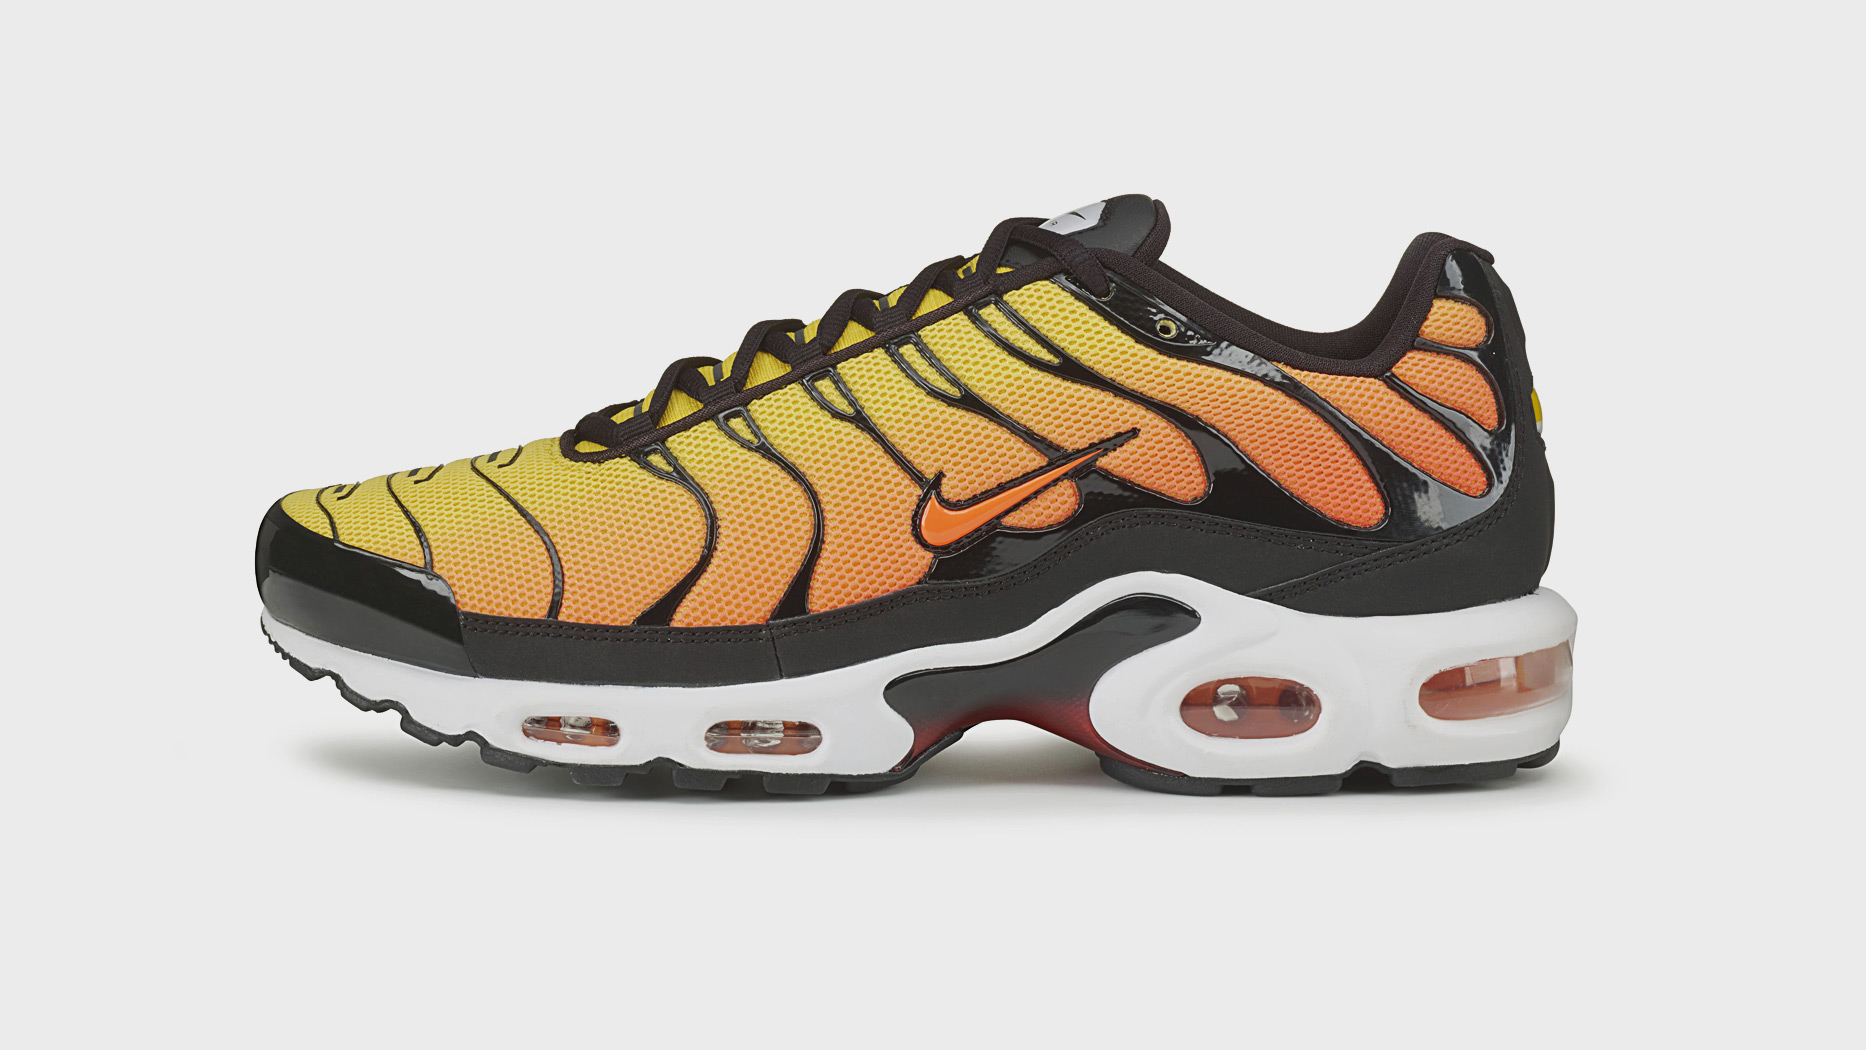 nike tn air max plus